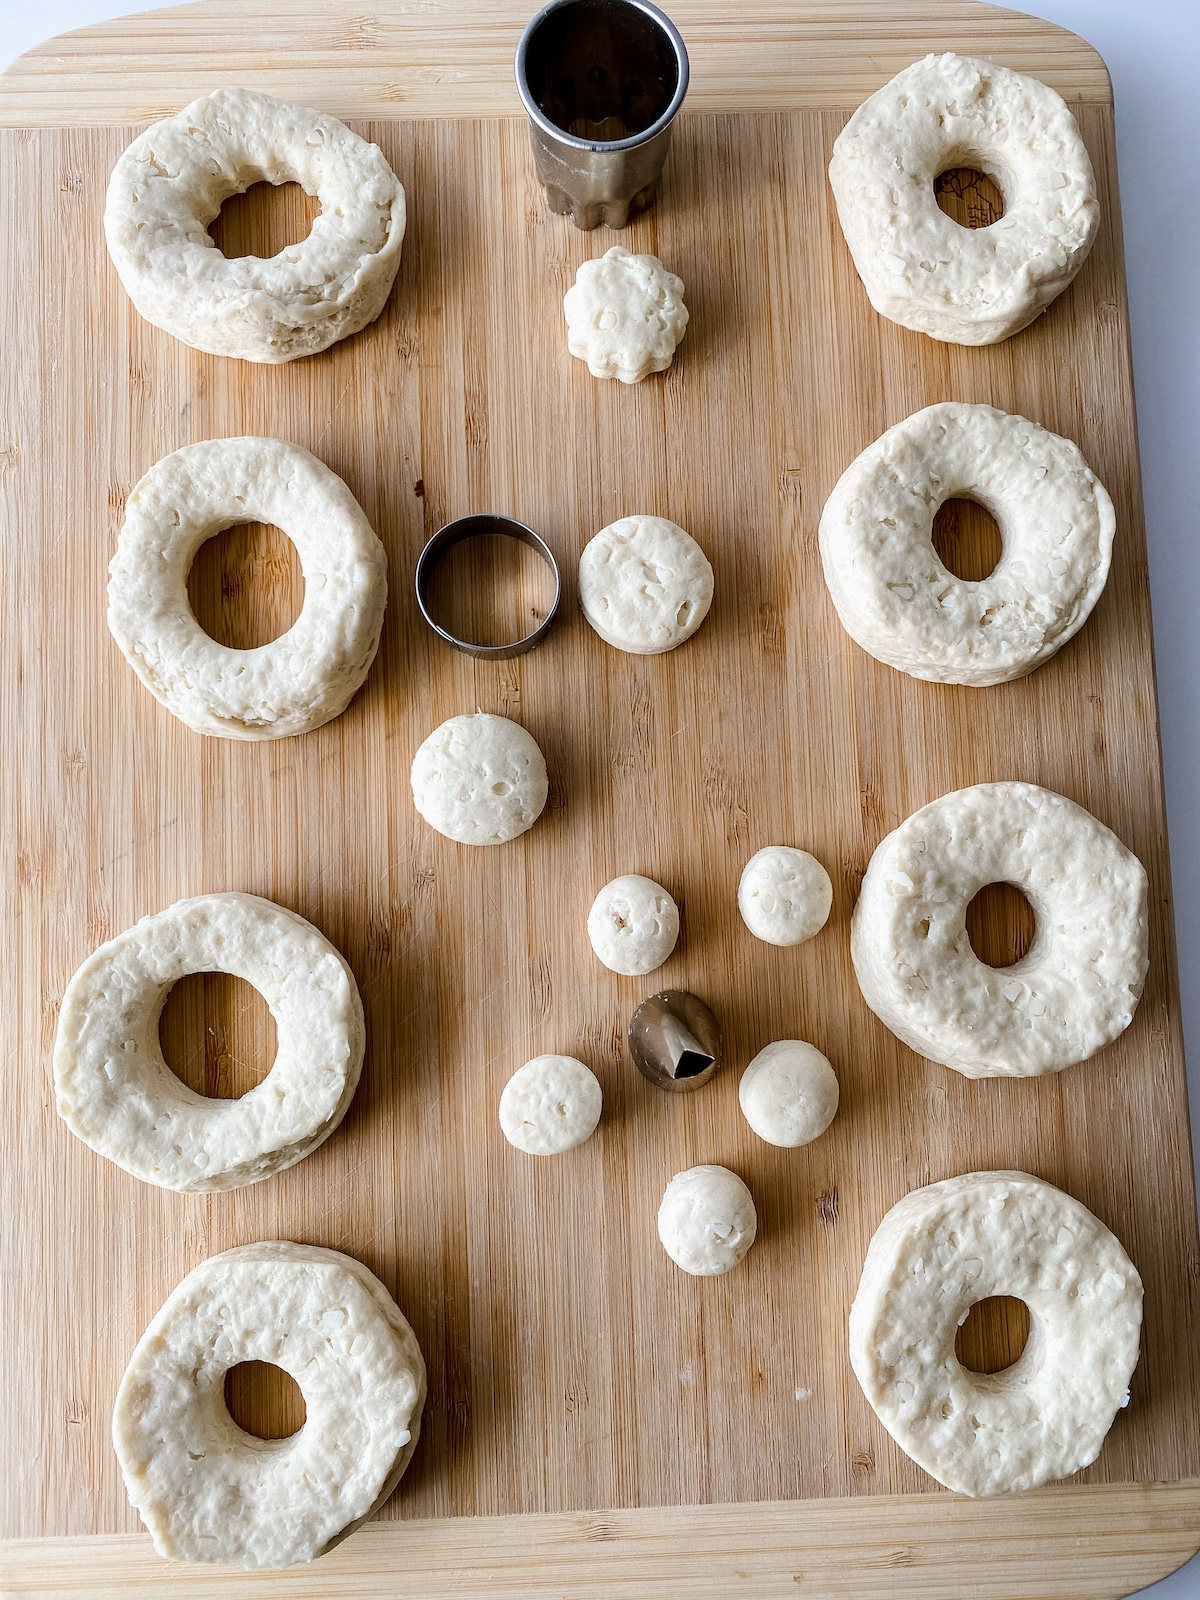 Cutting holes in donuts